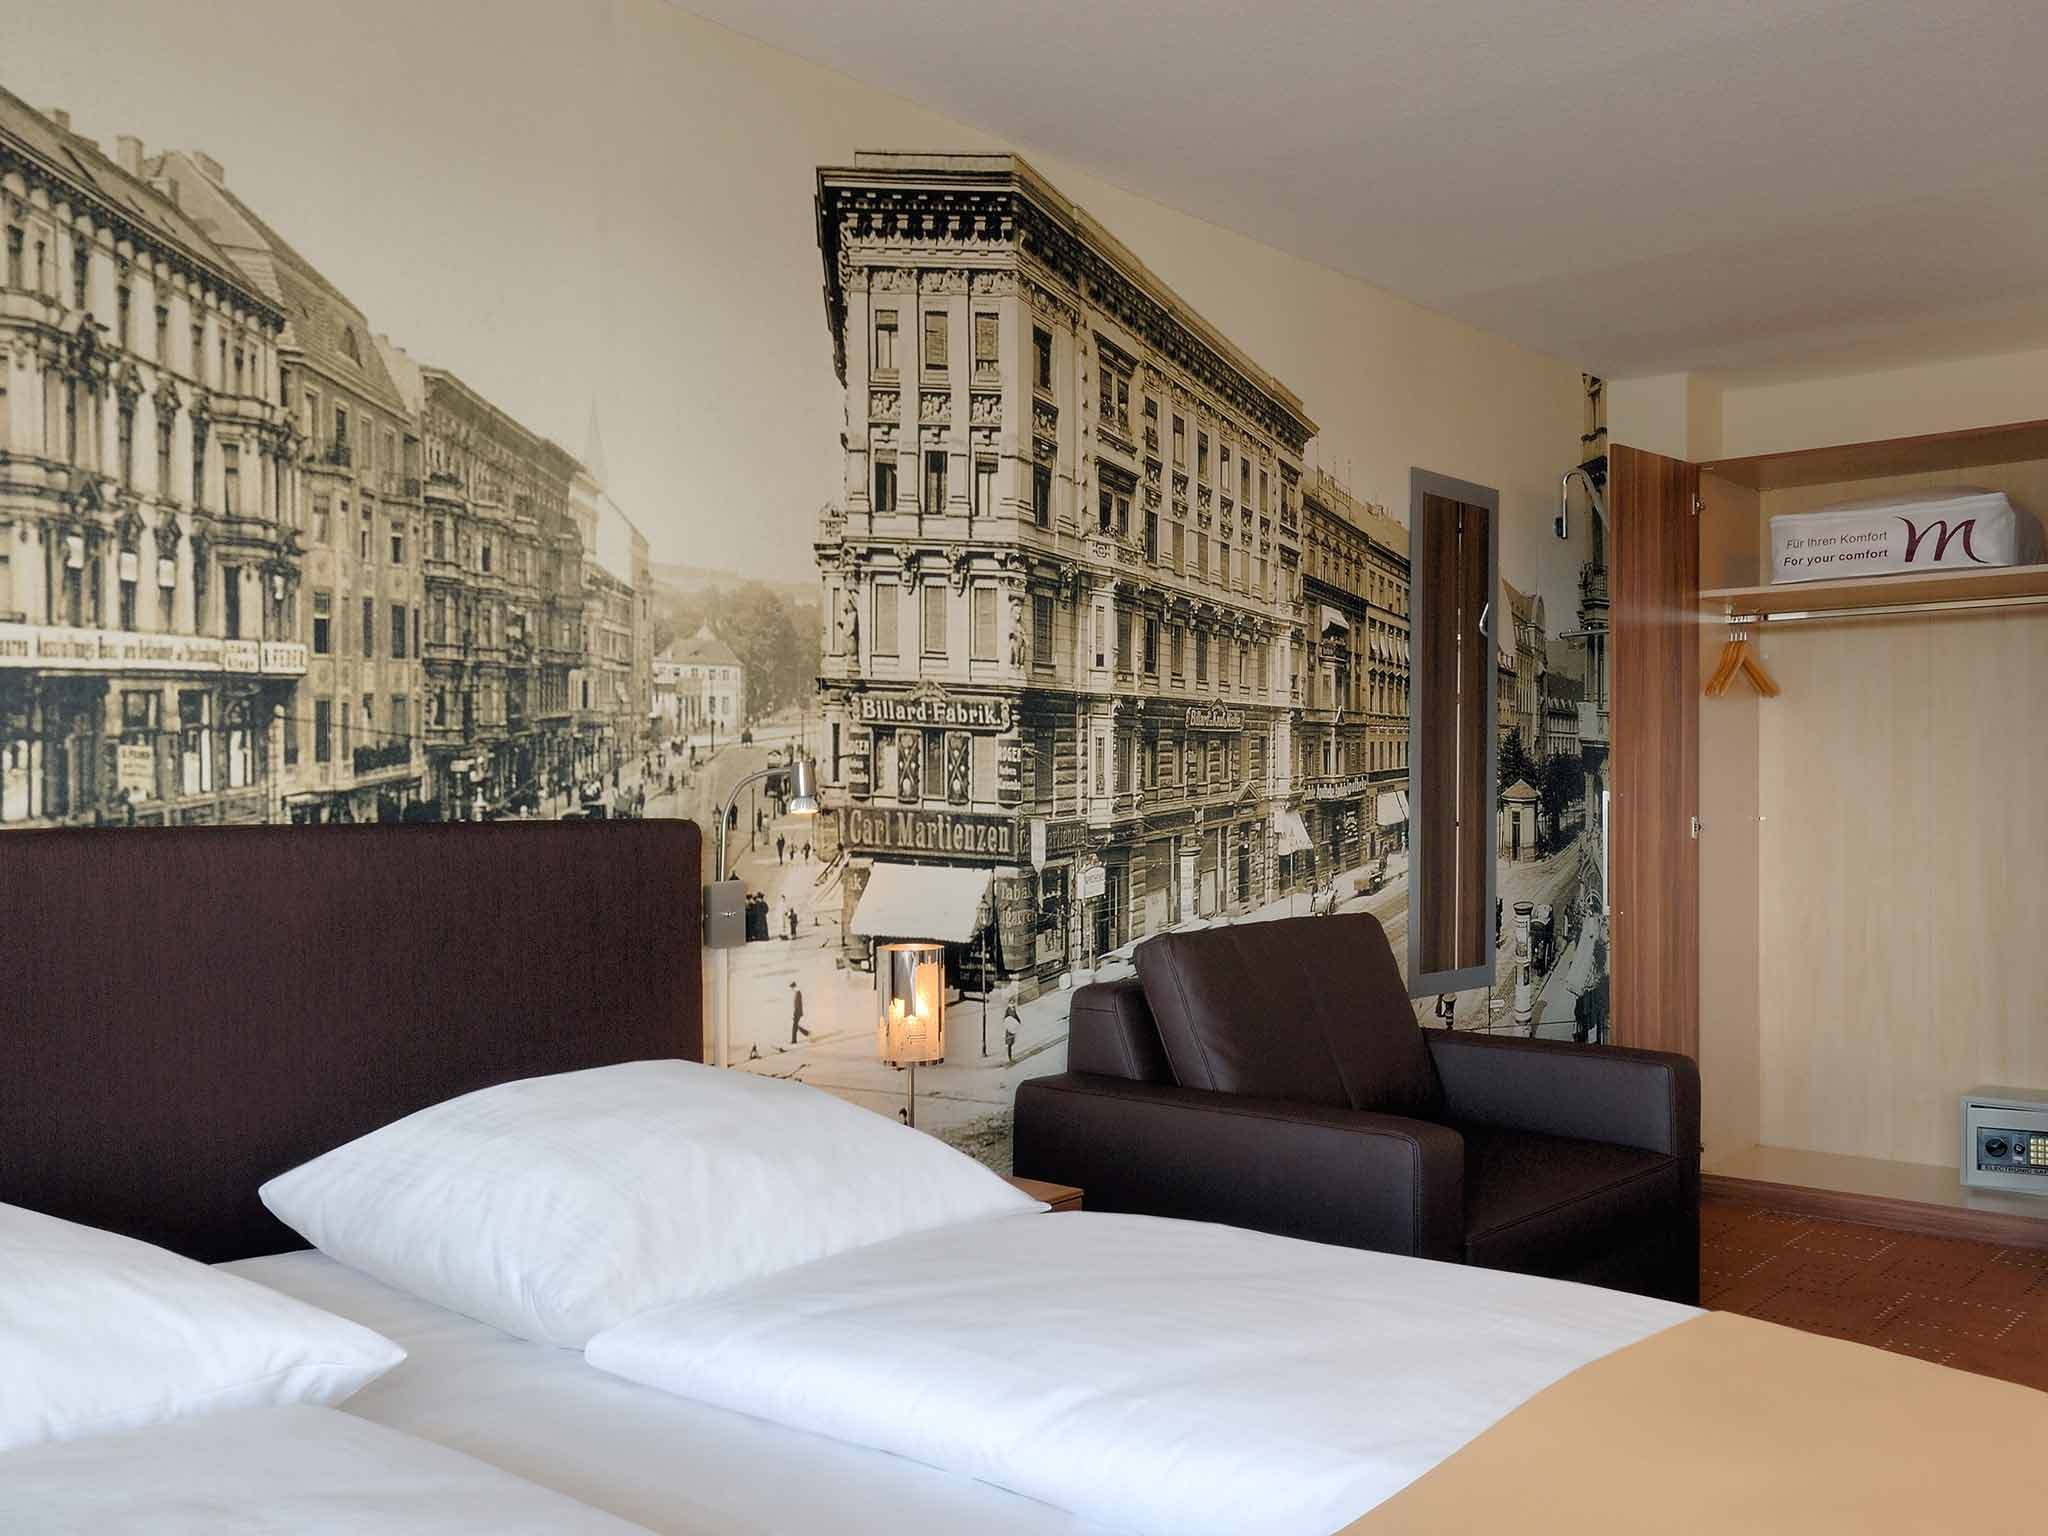 Mercure Hotel Berlin am Alexanderplatz Guestroom 3